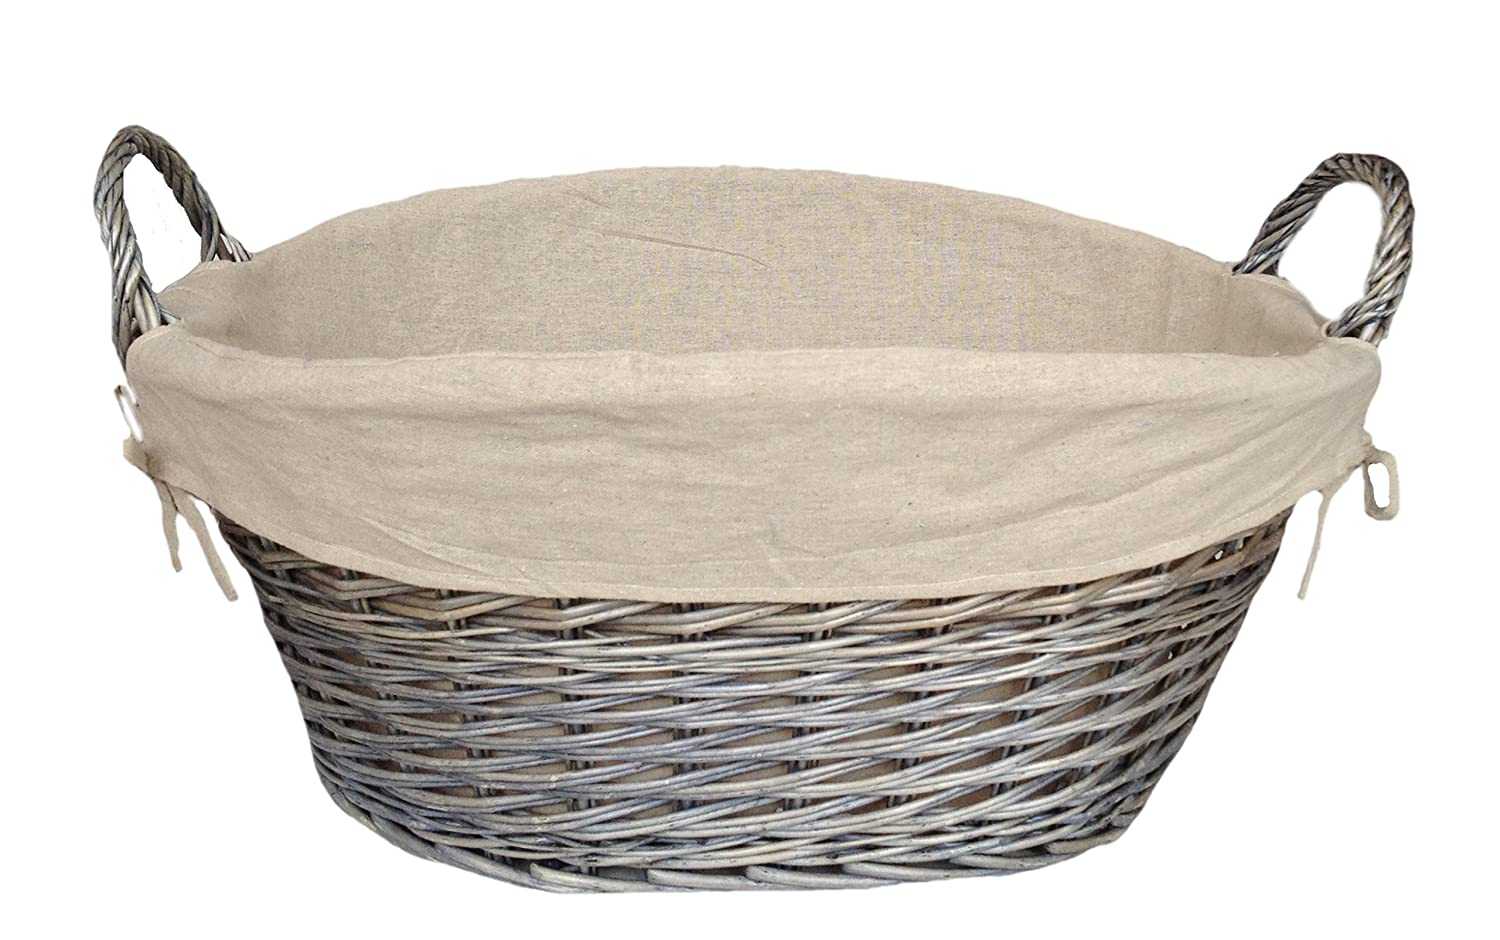 Red Hamper Antique Wash Lined Laundry Basket, Wicker, 51 x 64 x 29 cm H038